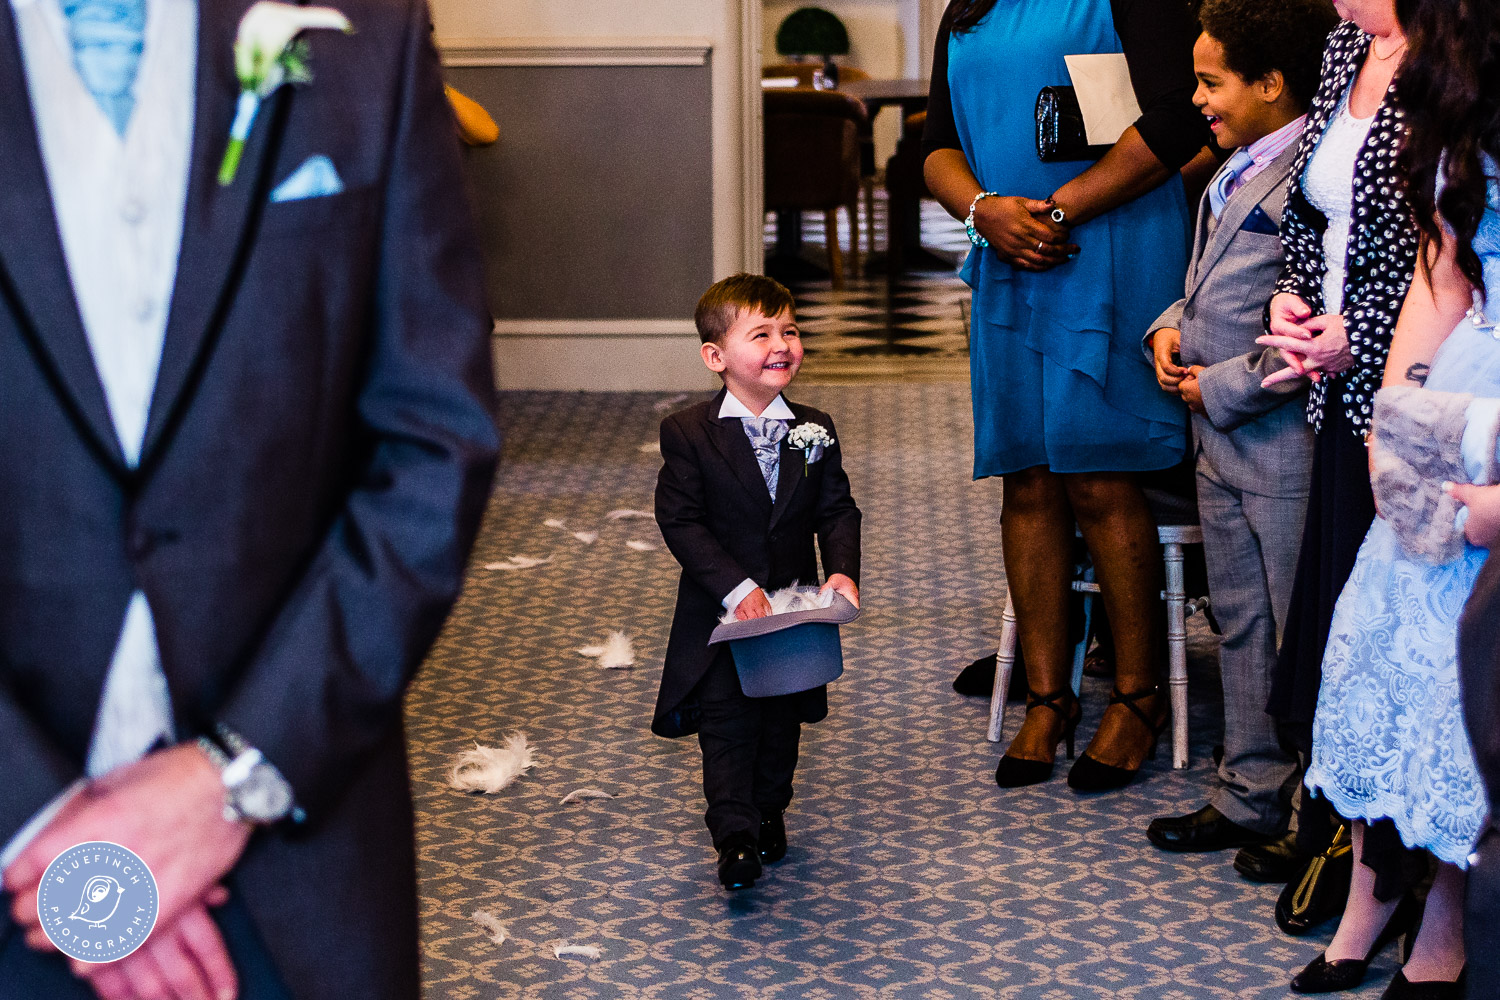 Mark & Sarah's Wedding Photography at Weston Hall